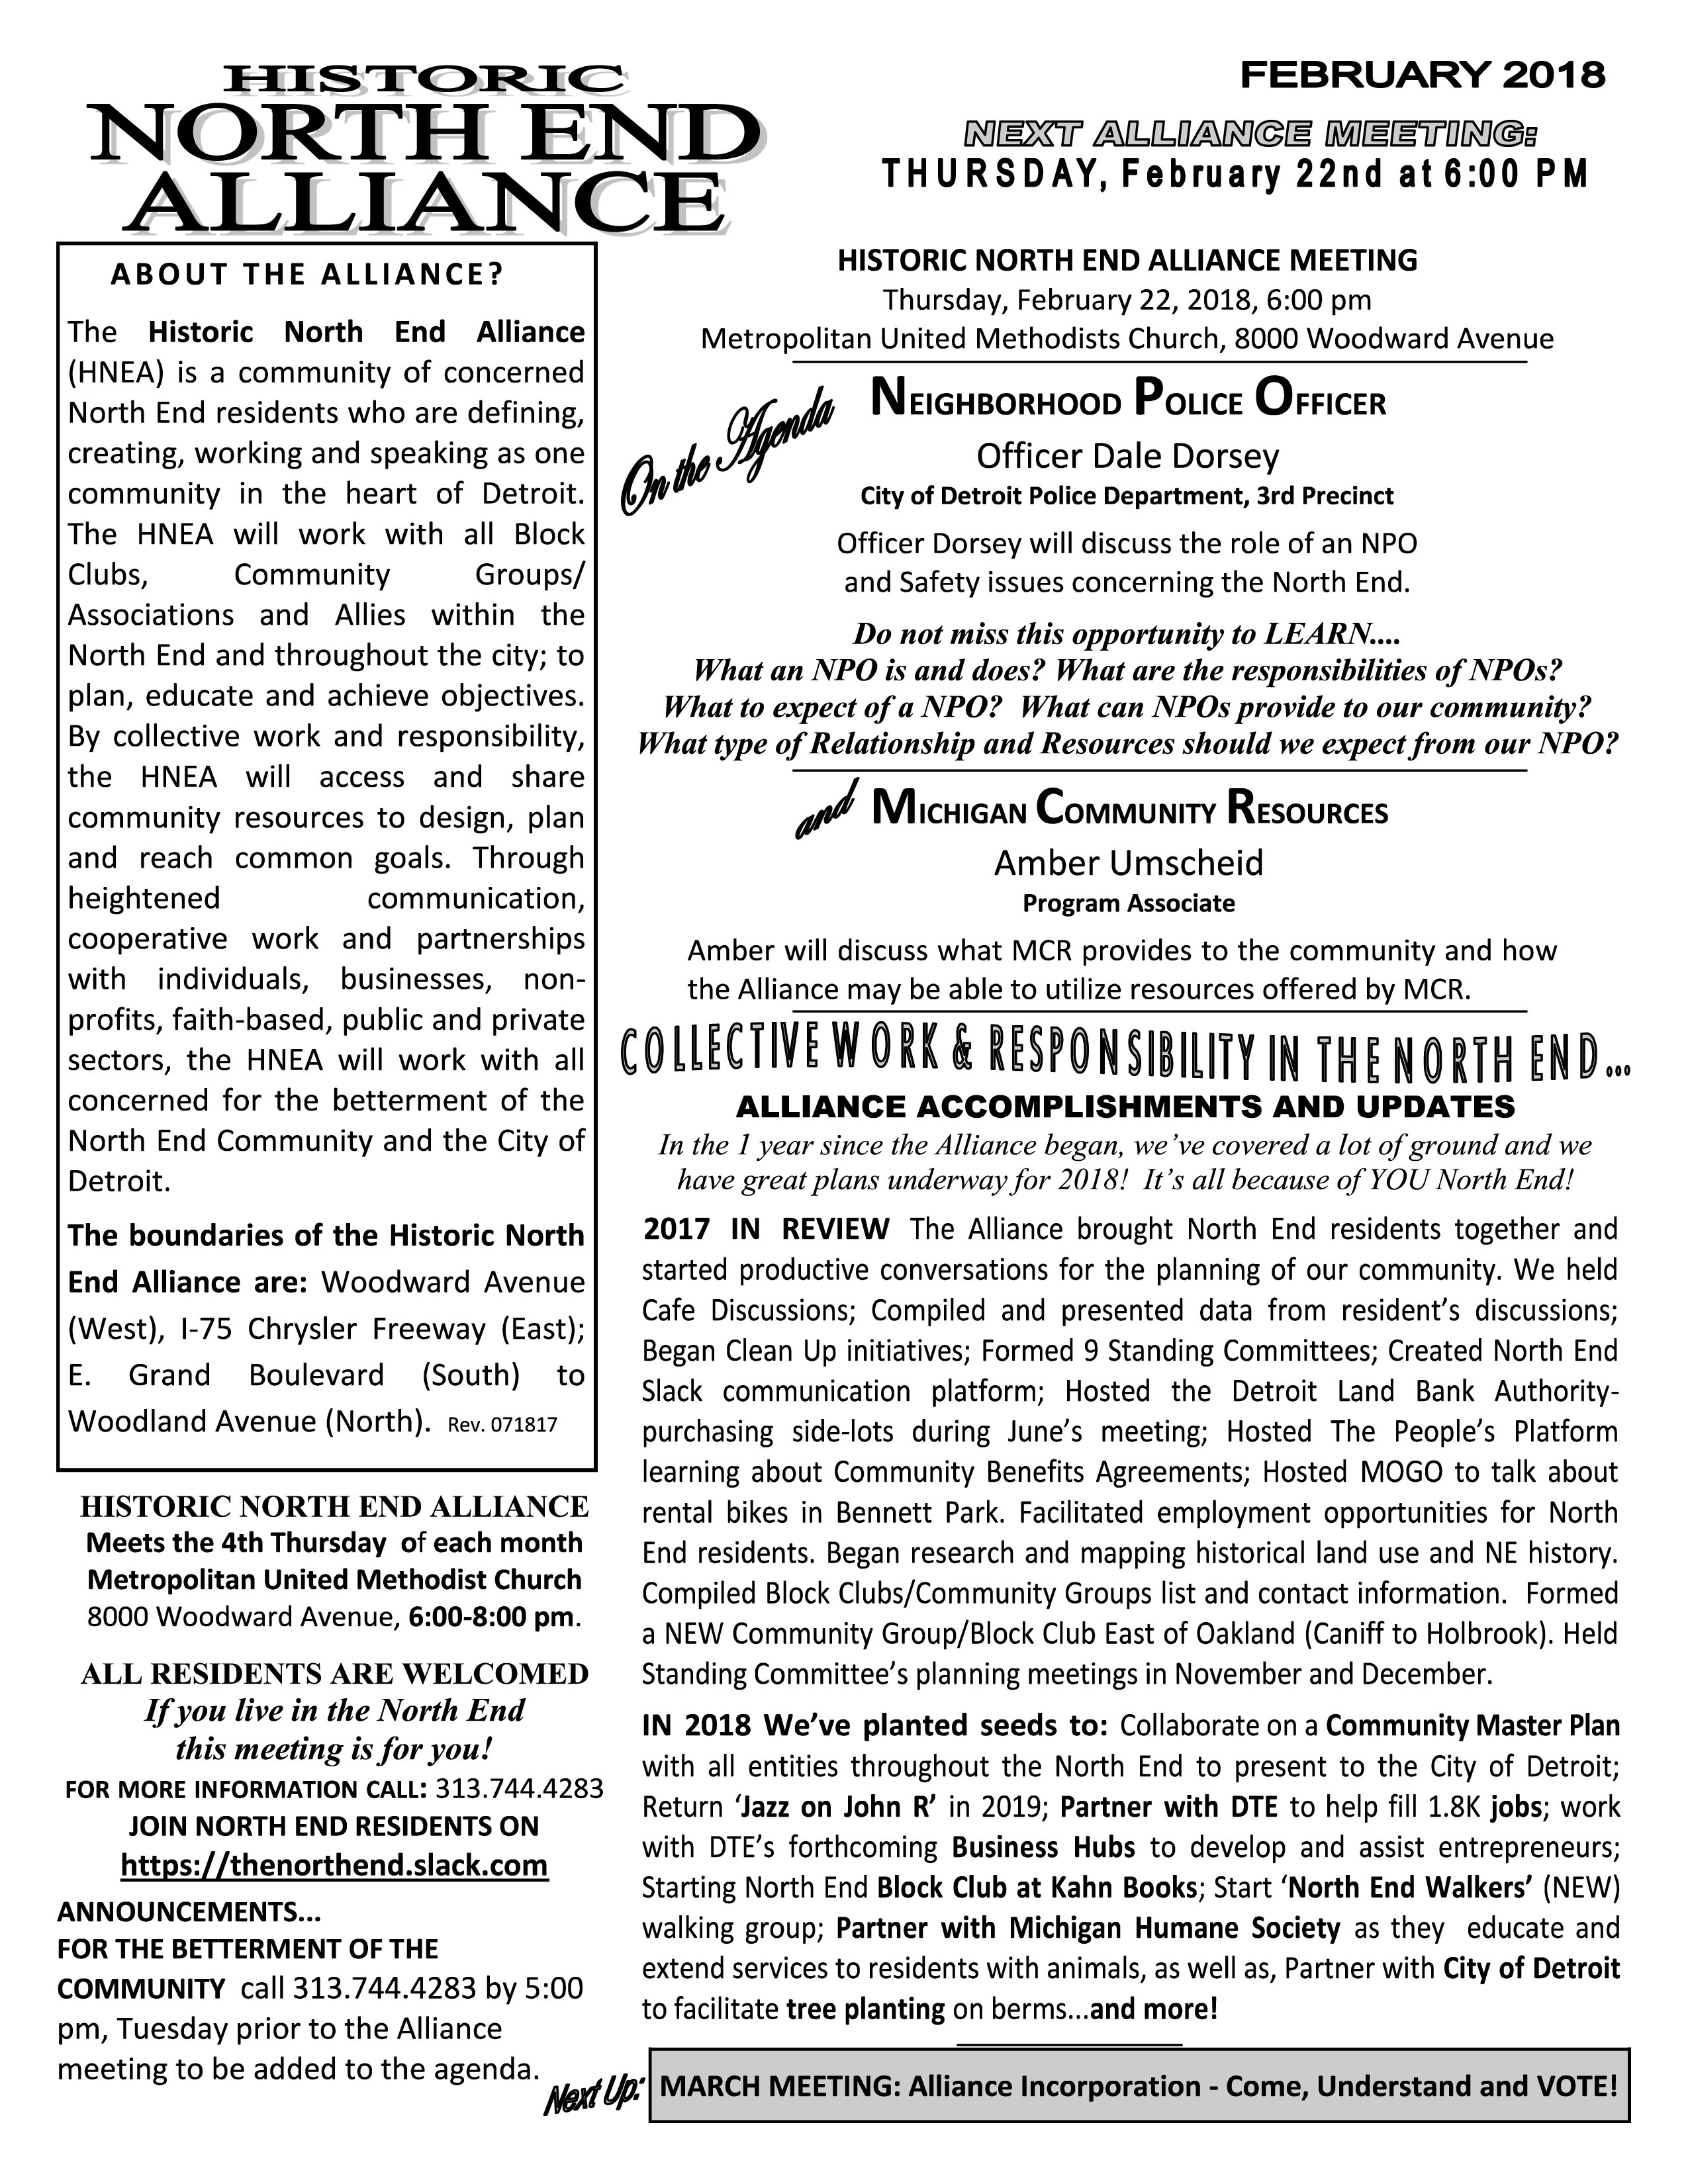 Historic North End Alliance Meeting Notice